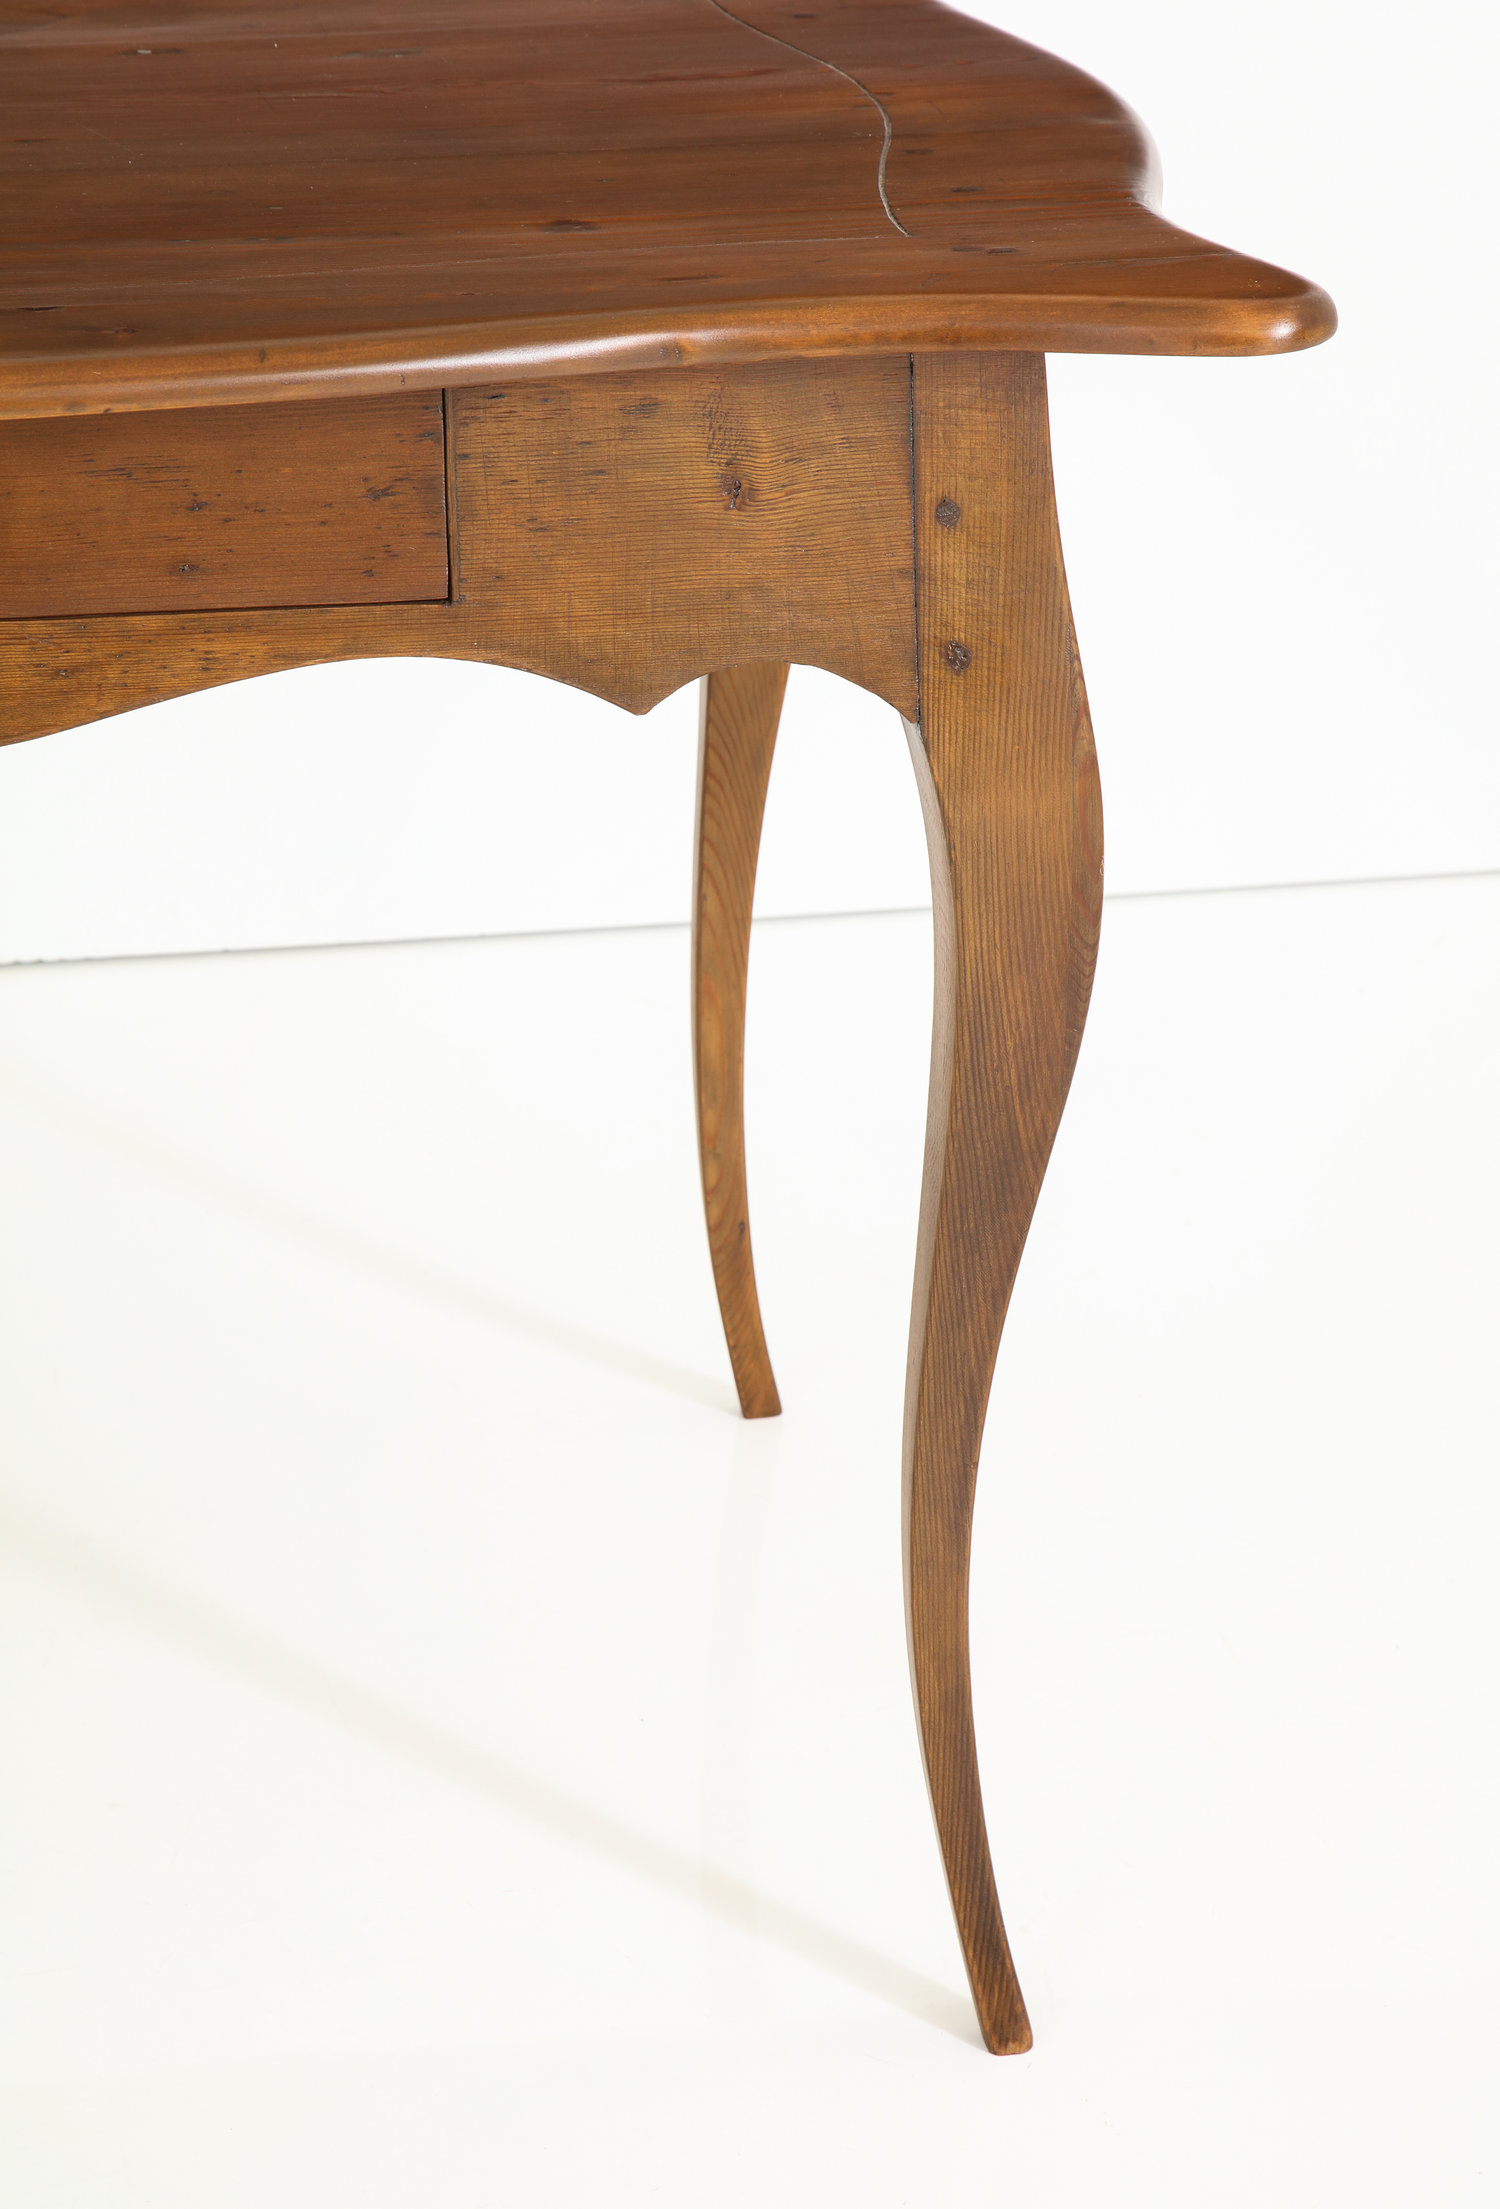 Early 19th century Rococo pine table or desk — Babou